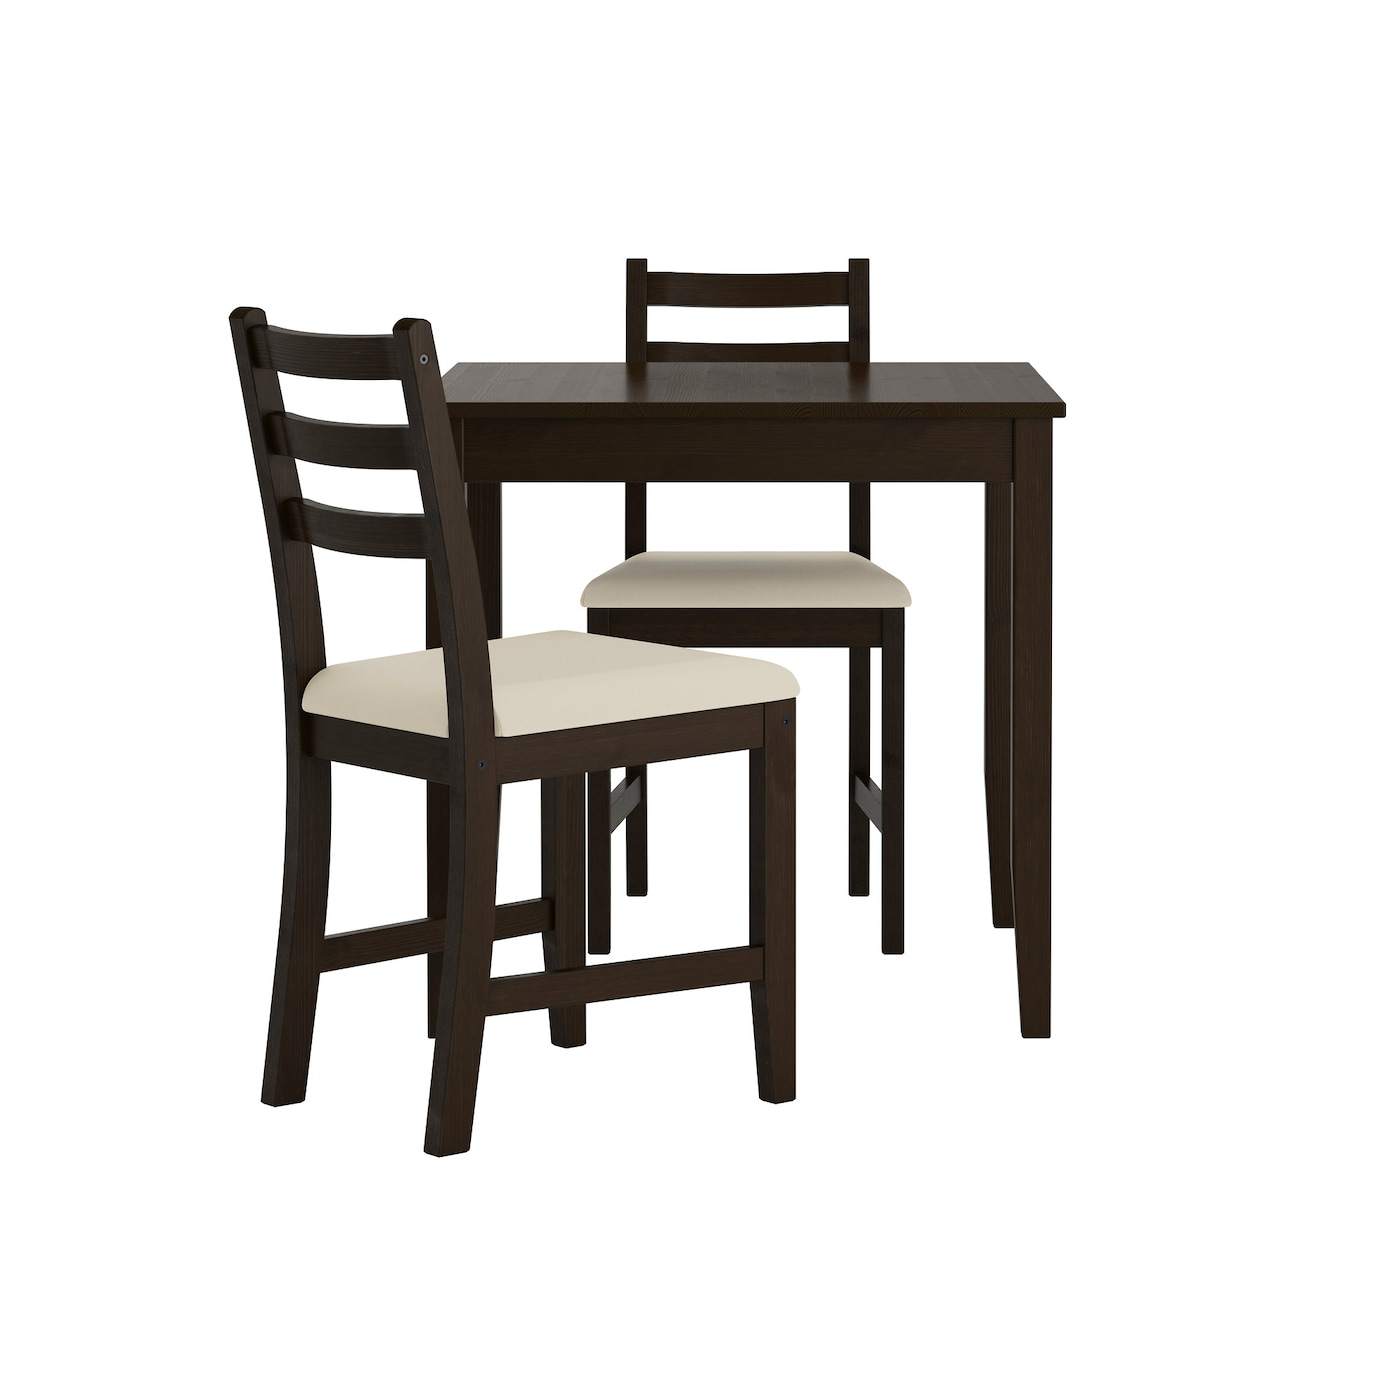 Dining table sets dining room sets ikea for Small wood dining table and chairs